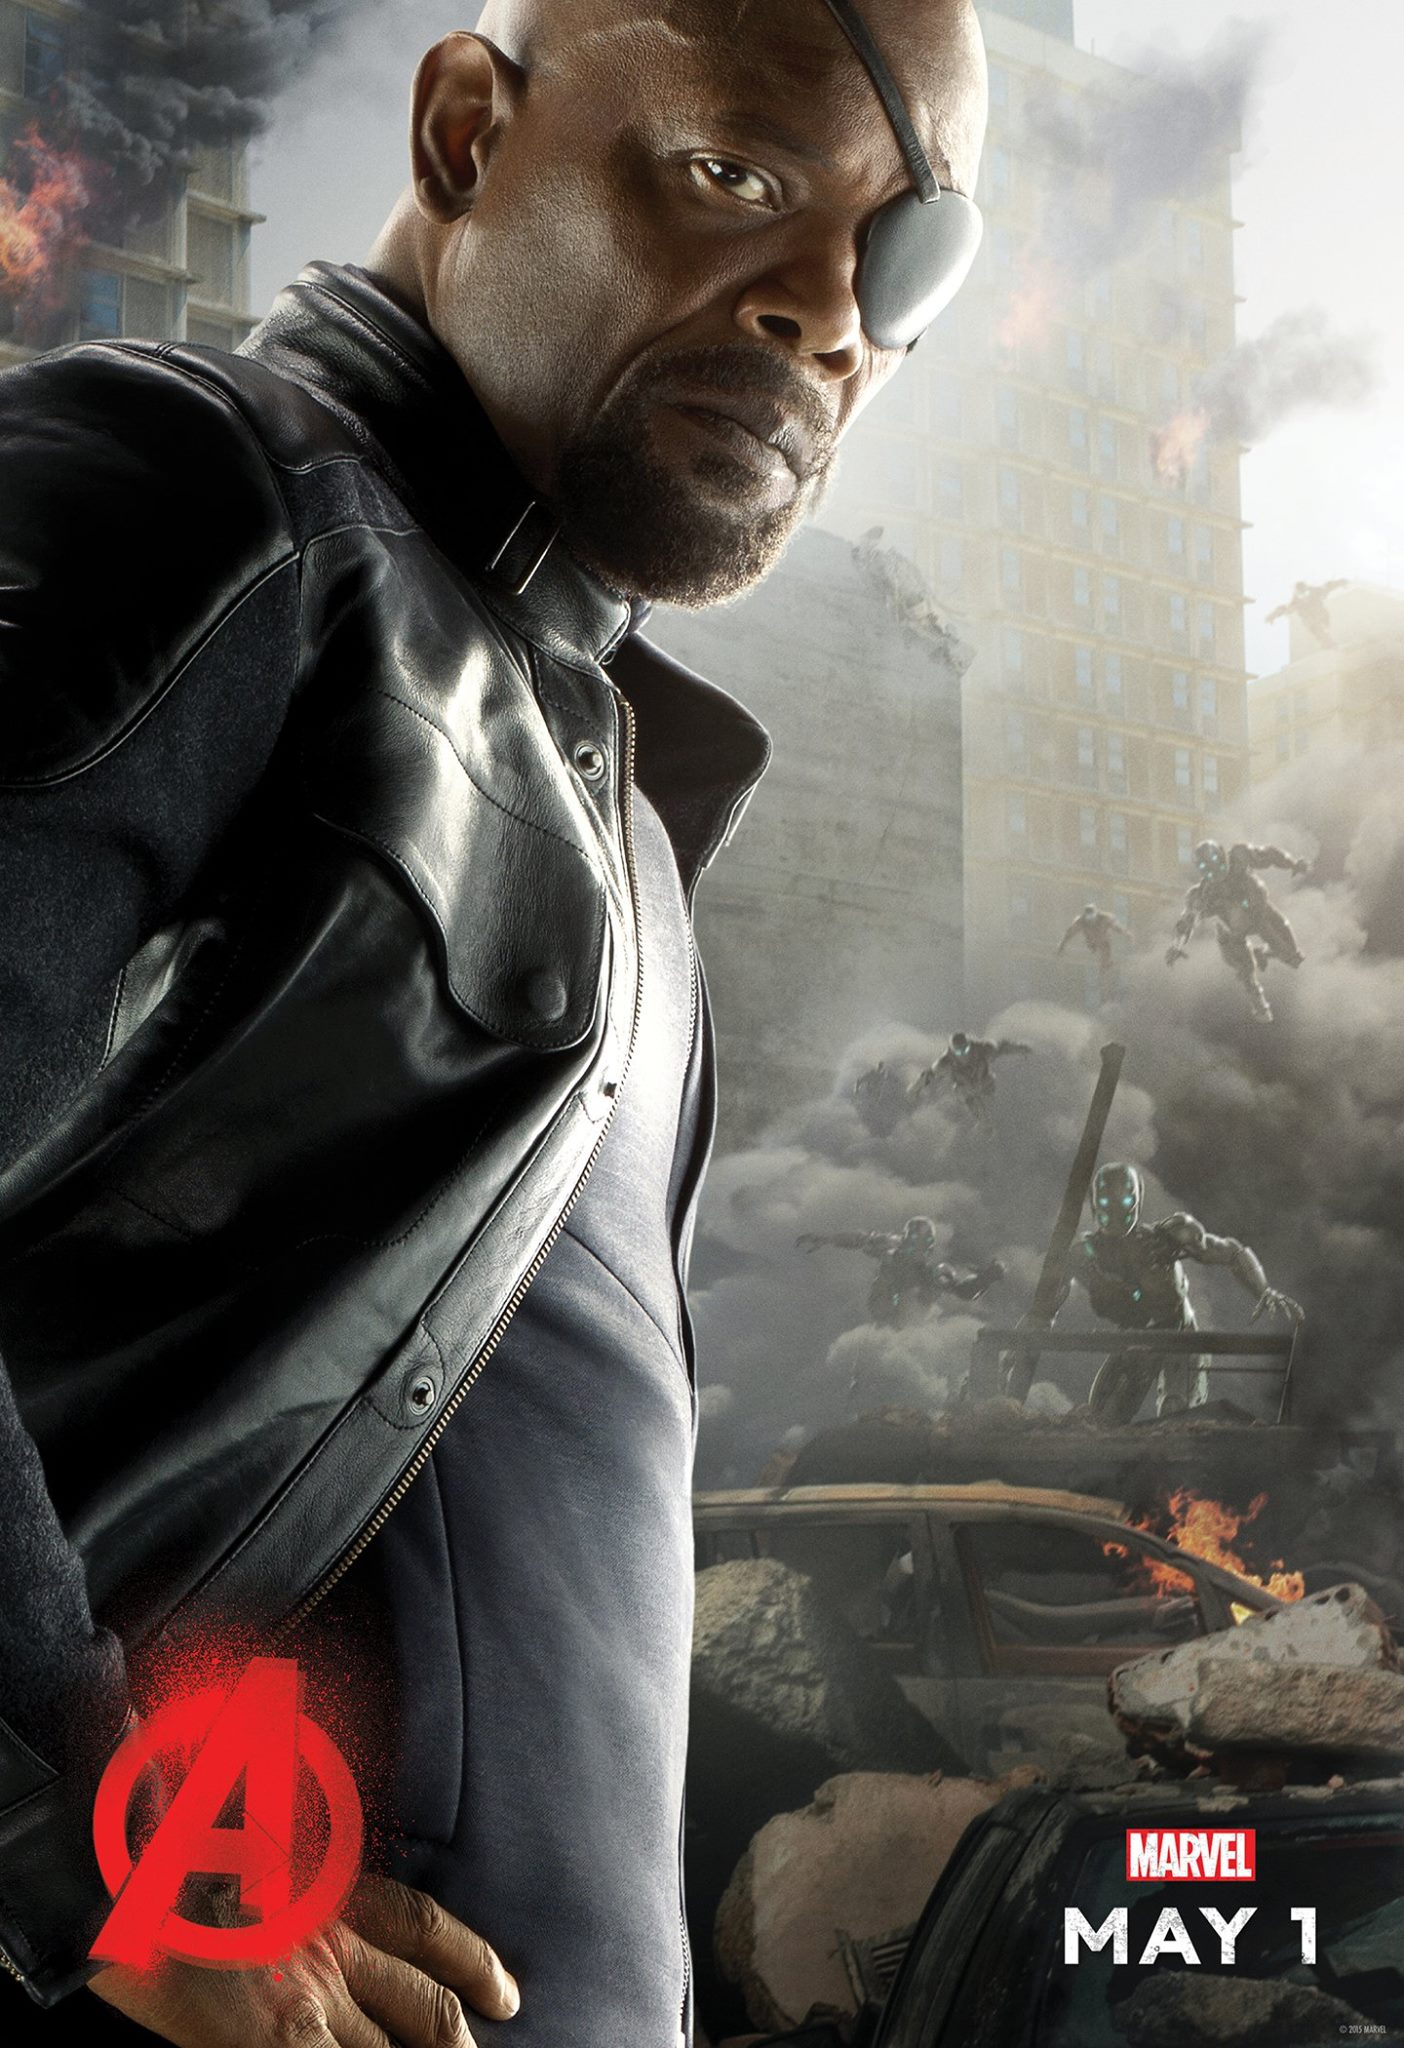 Avengers: Age of Ultron Nick Fury Poster